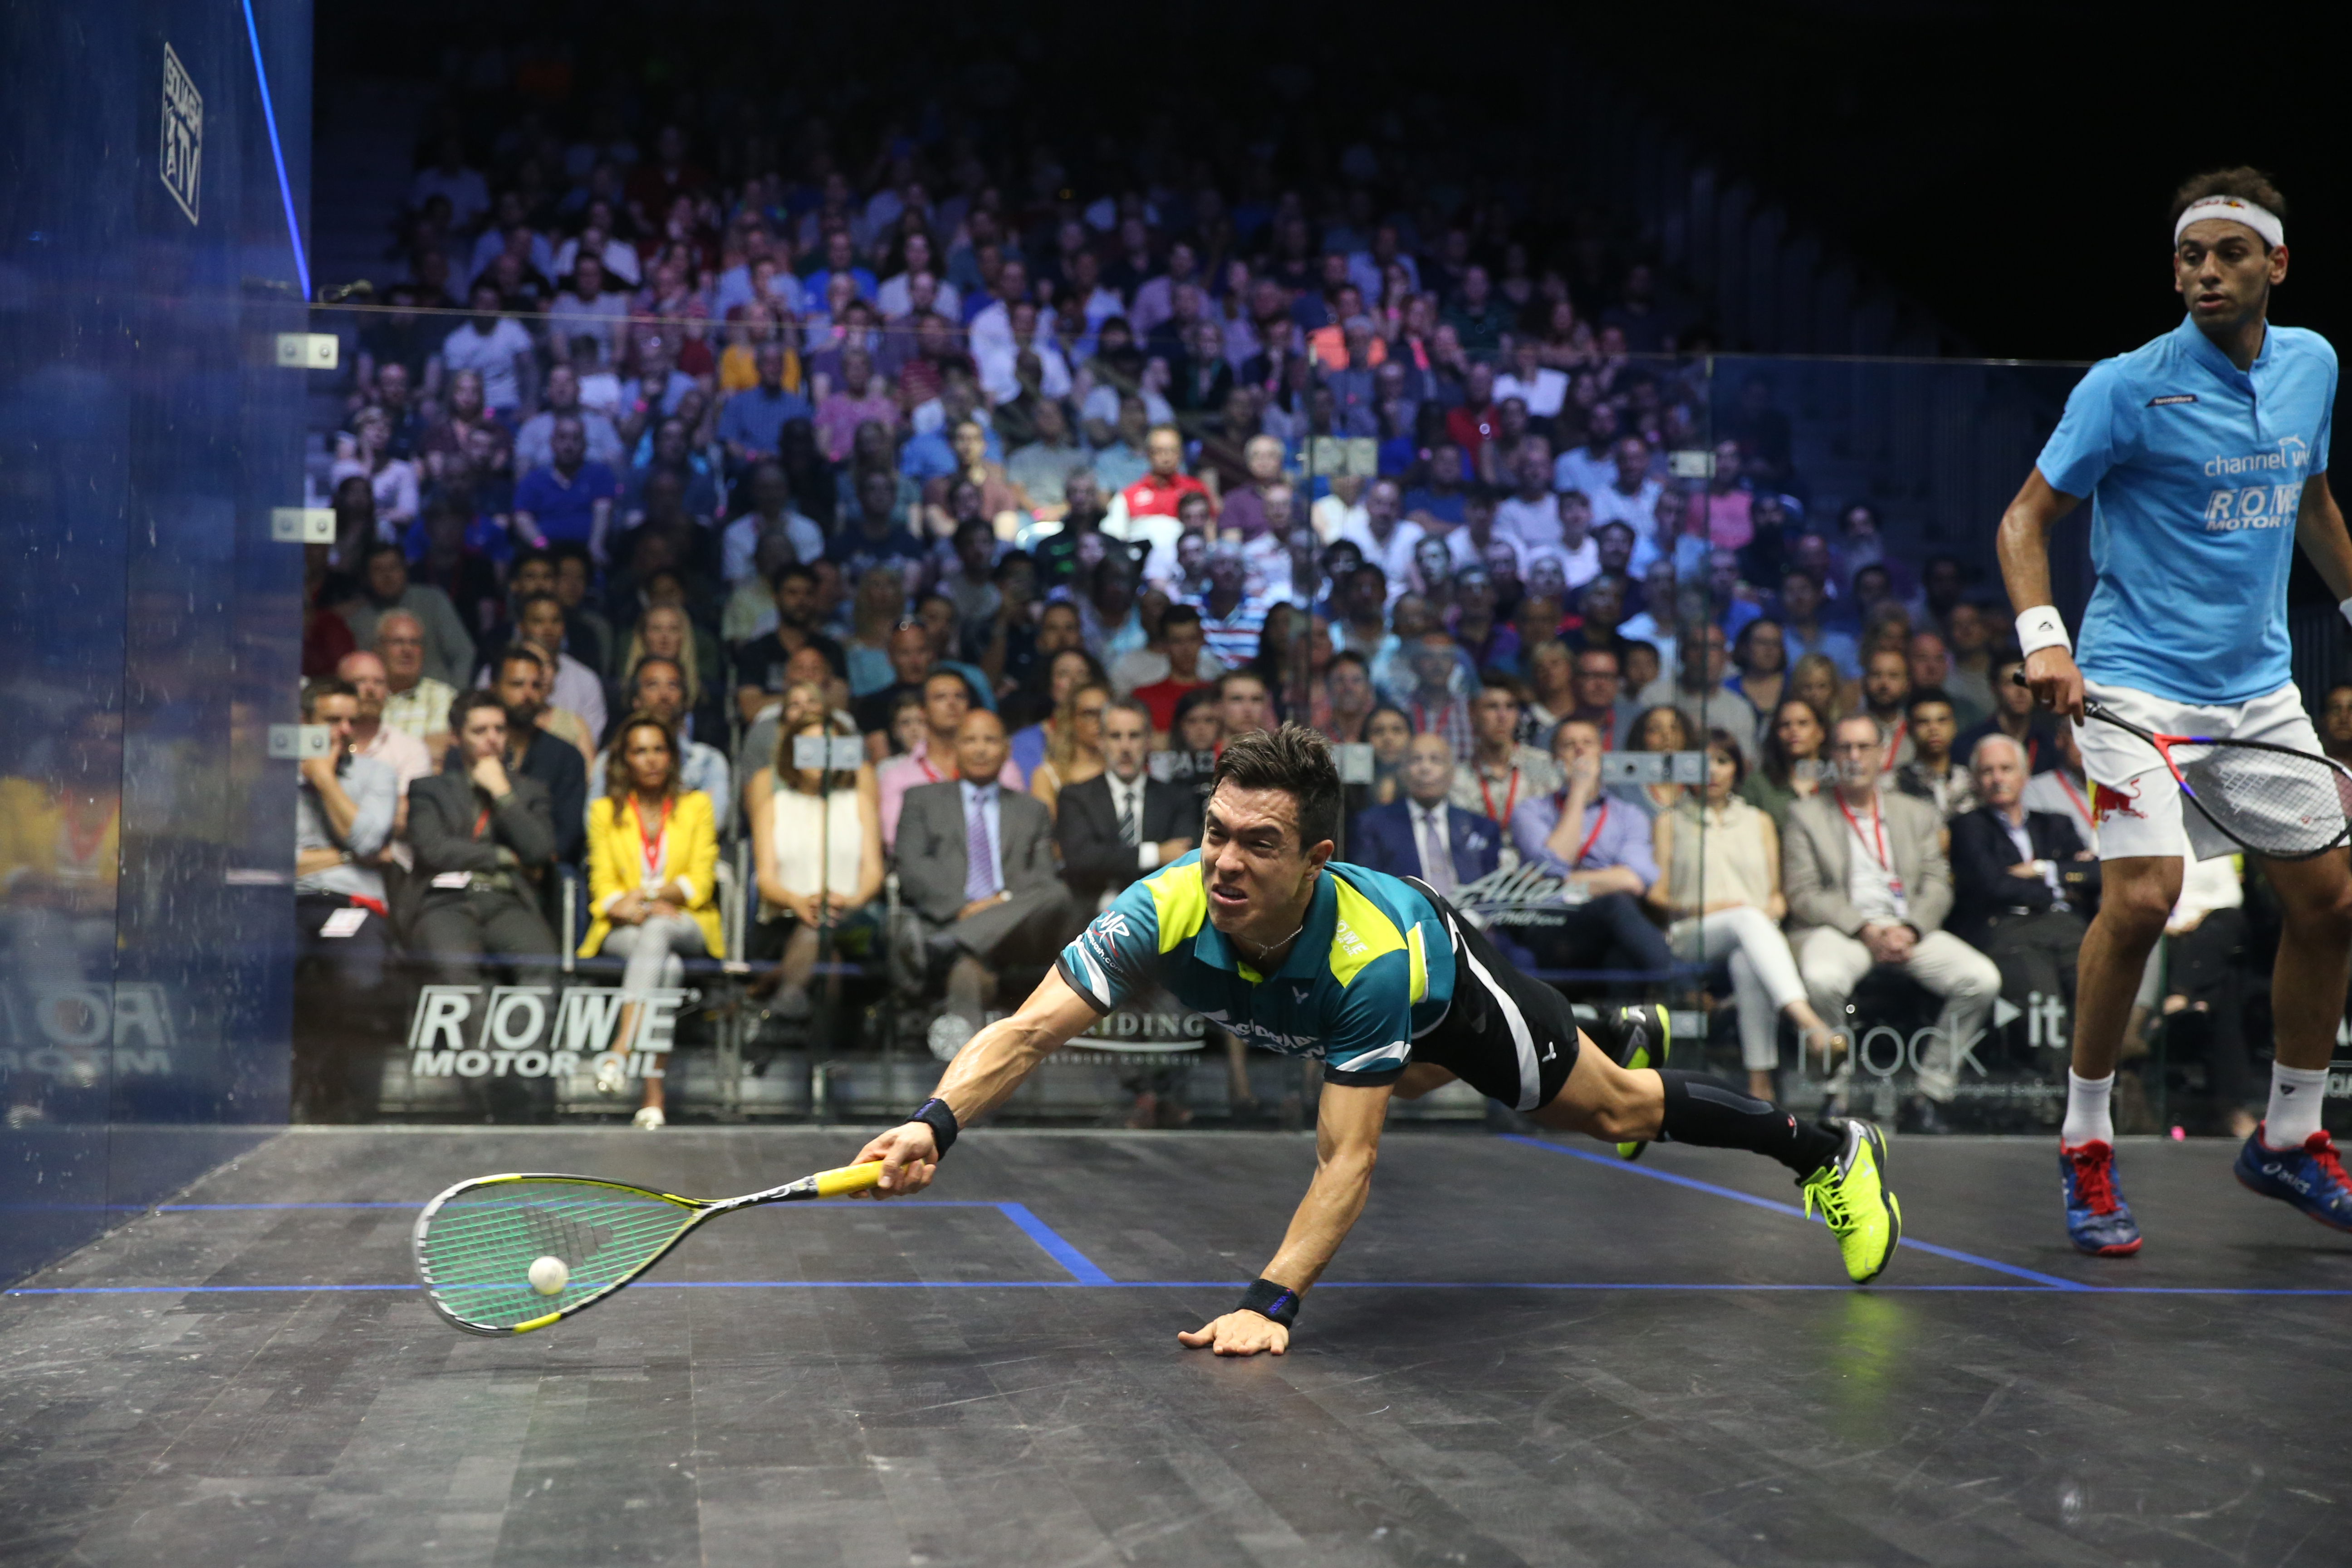 squash mad new-look psa world tour structure kicks off this week